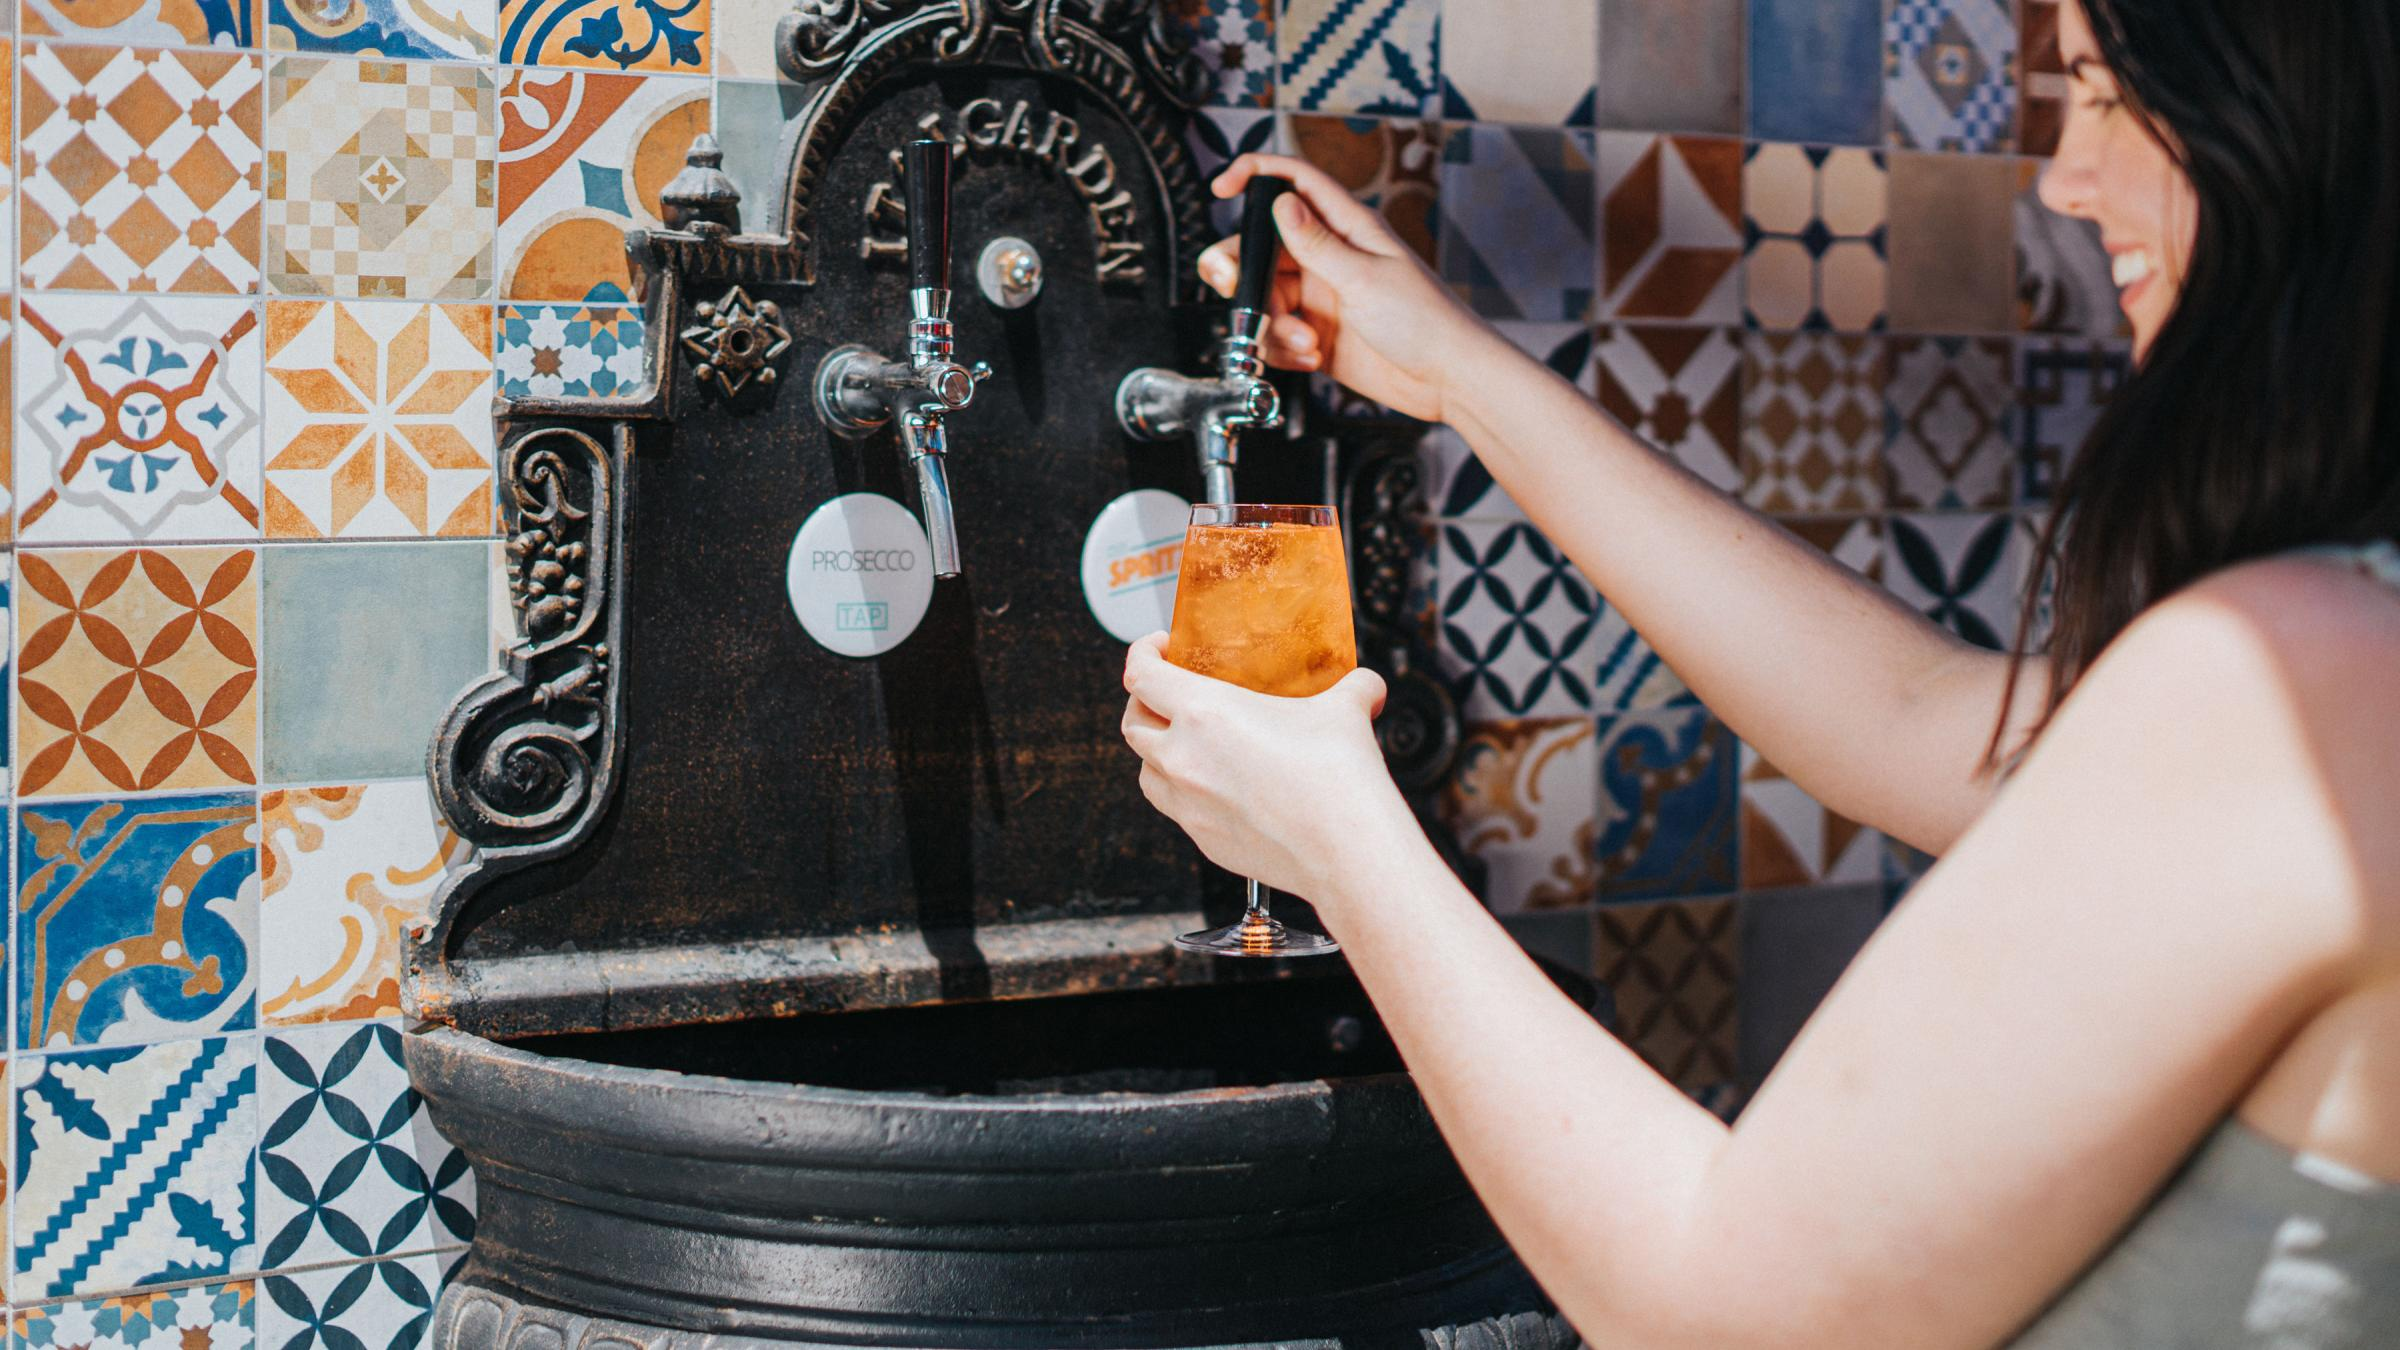 This Sydney Restaurant Has A Bottomless Prosecco And Aperol Spritz Fountain photo